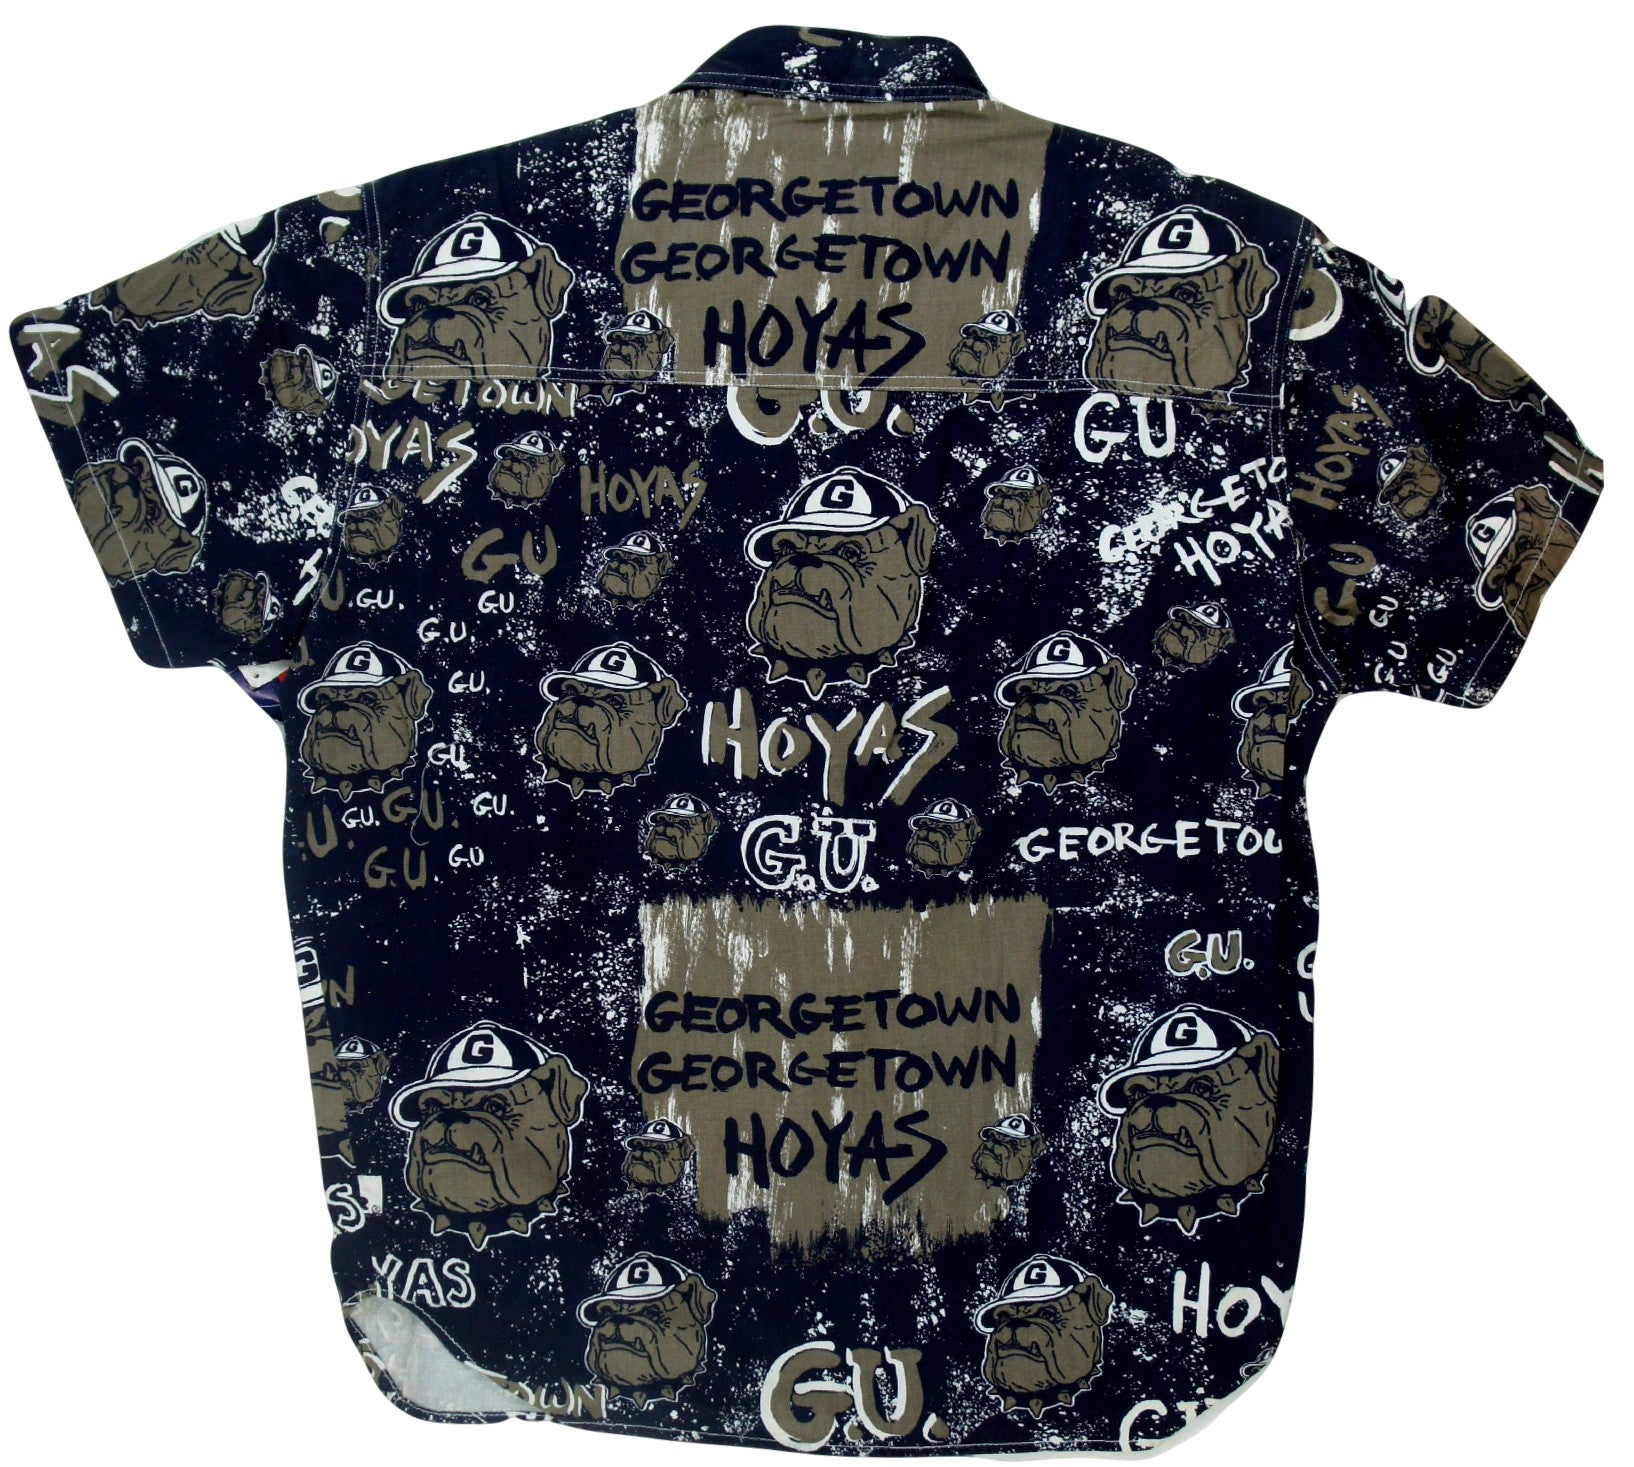 Georgetown Hoyas Button Up - And Still